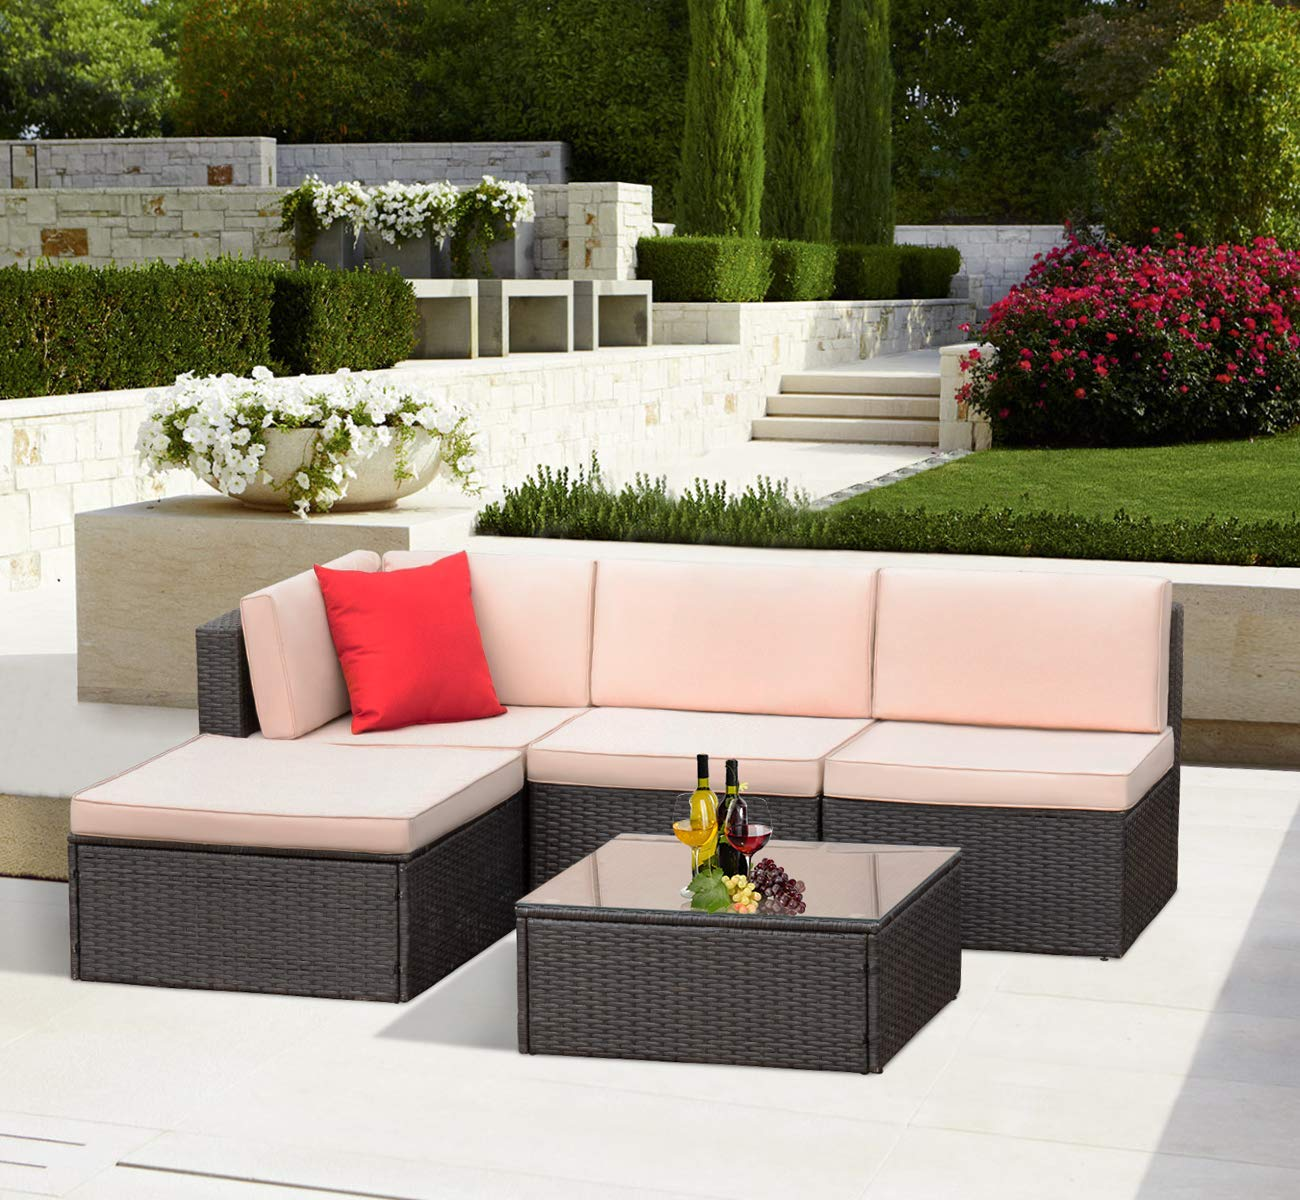 KaiMeng Outdoor Patio Furniture Lawn Garden Patio Sets All-Weather